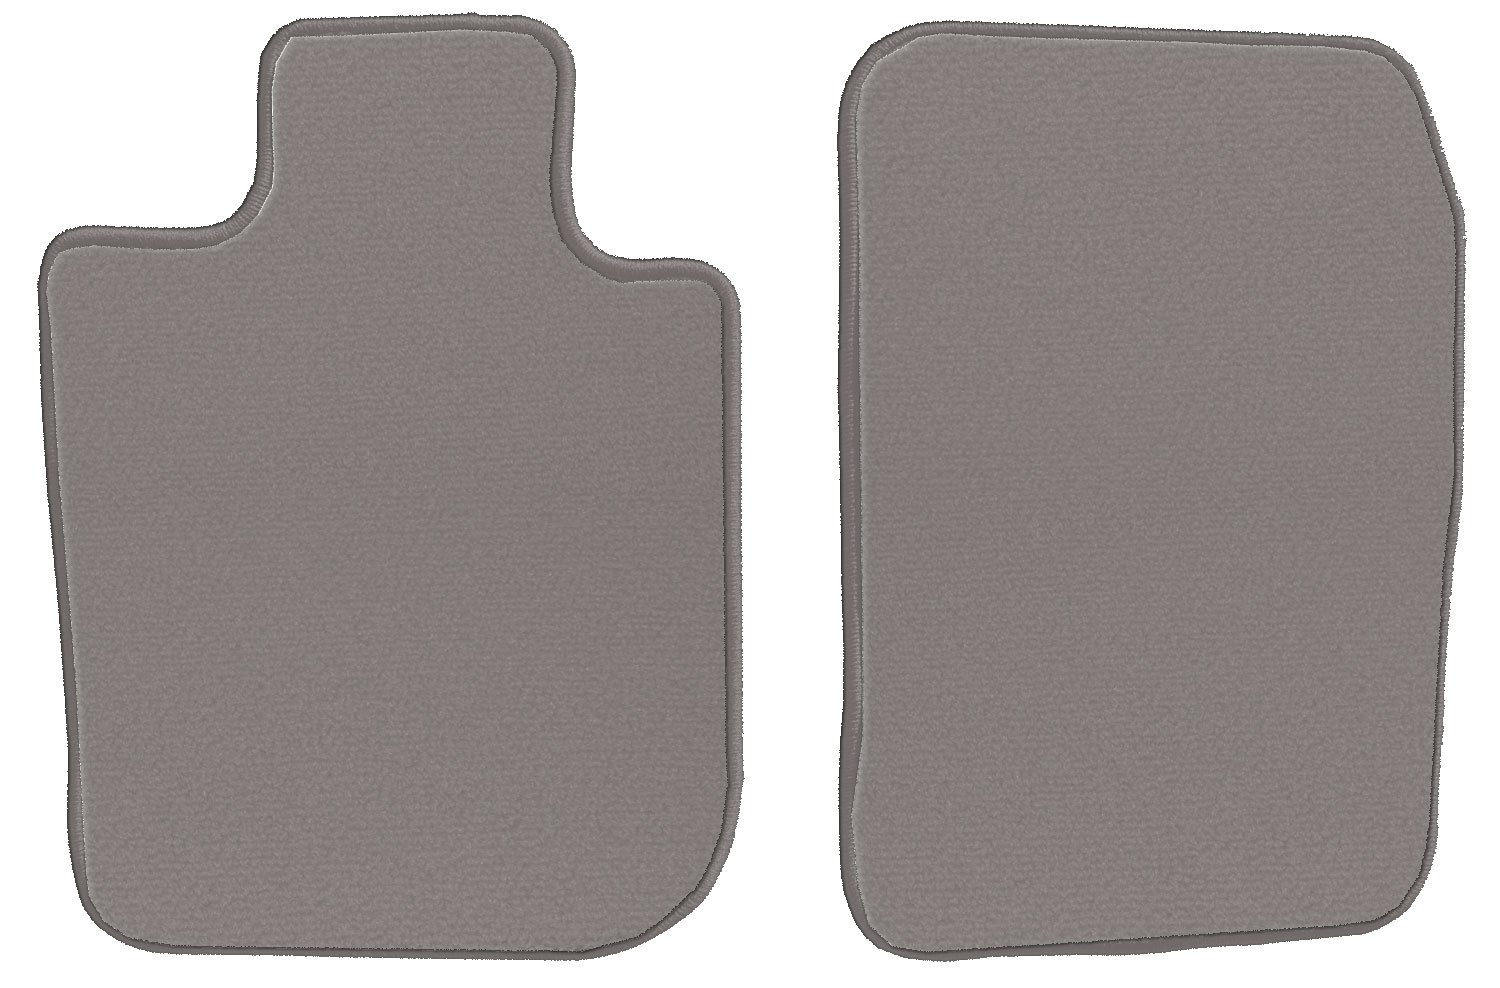 2004 2003 2002 2006 Mercedes-Benz S-Class Sedan Grey Loop Driver /& Passenger Floor 2005 GGBAILEY D2690A-F1A-GY-LP Custom Fit Car Mats for 2000 2001